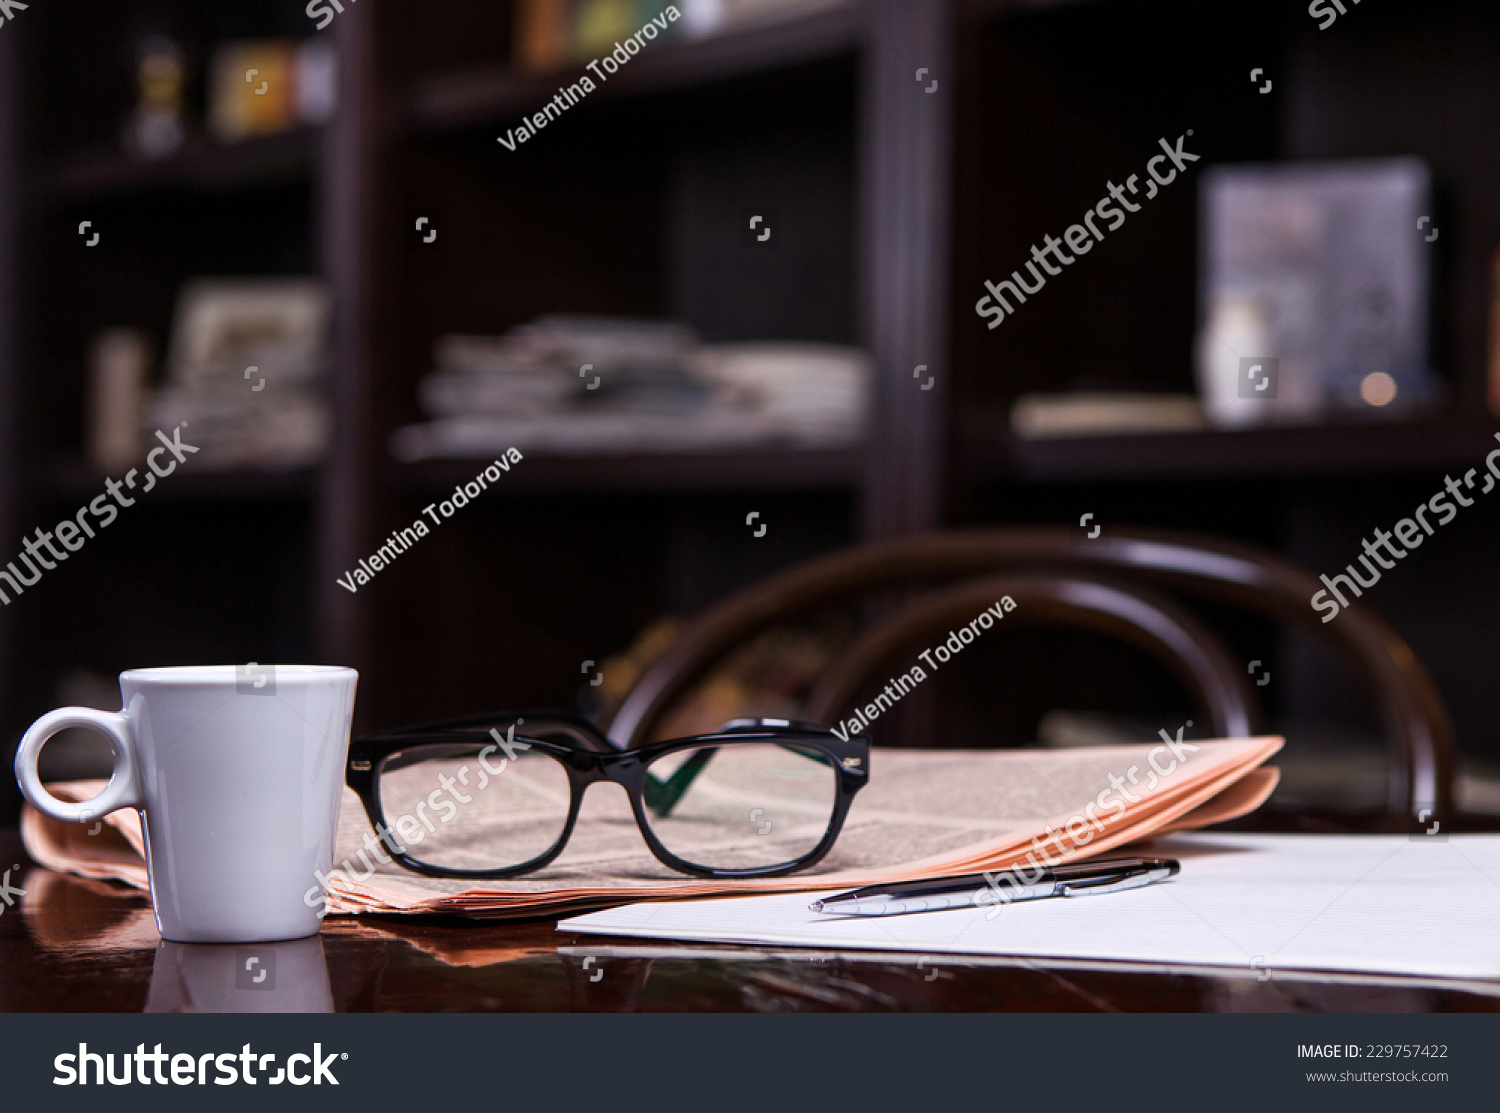 5eab2ccb3ef8 Newspapers Coffee Cup Reading Glasses Pen Stock Photo (Edit Now ...